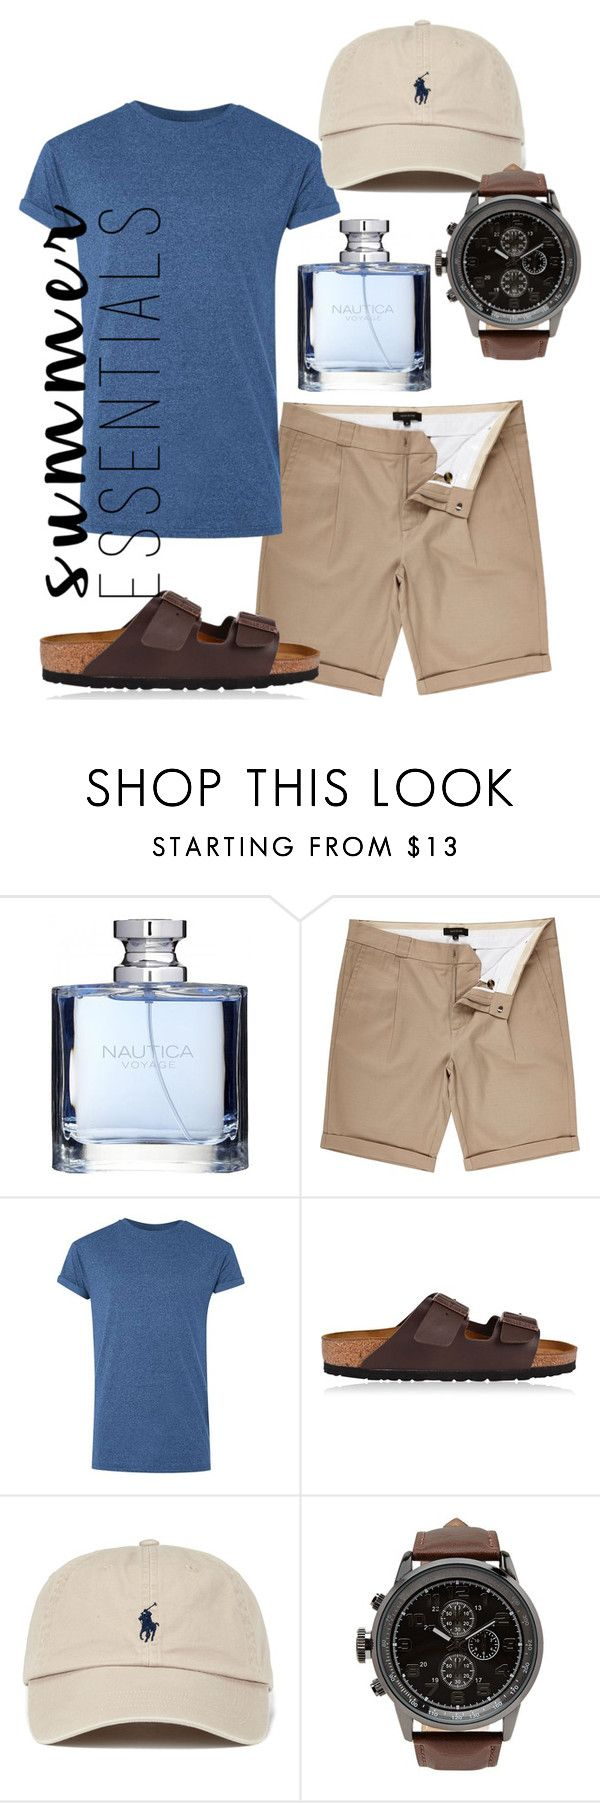 """""""men's summer essentials"""" by beavoight ❤ liked on Polyvore featuring Nautica, River Island, Topman, Birkenstock, Forever 21, men's fashion, menswear and summermenswearessentials"""